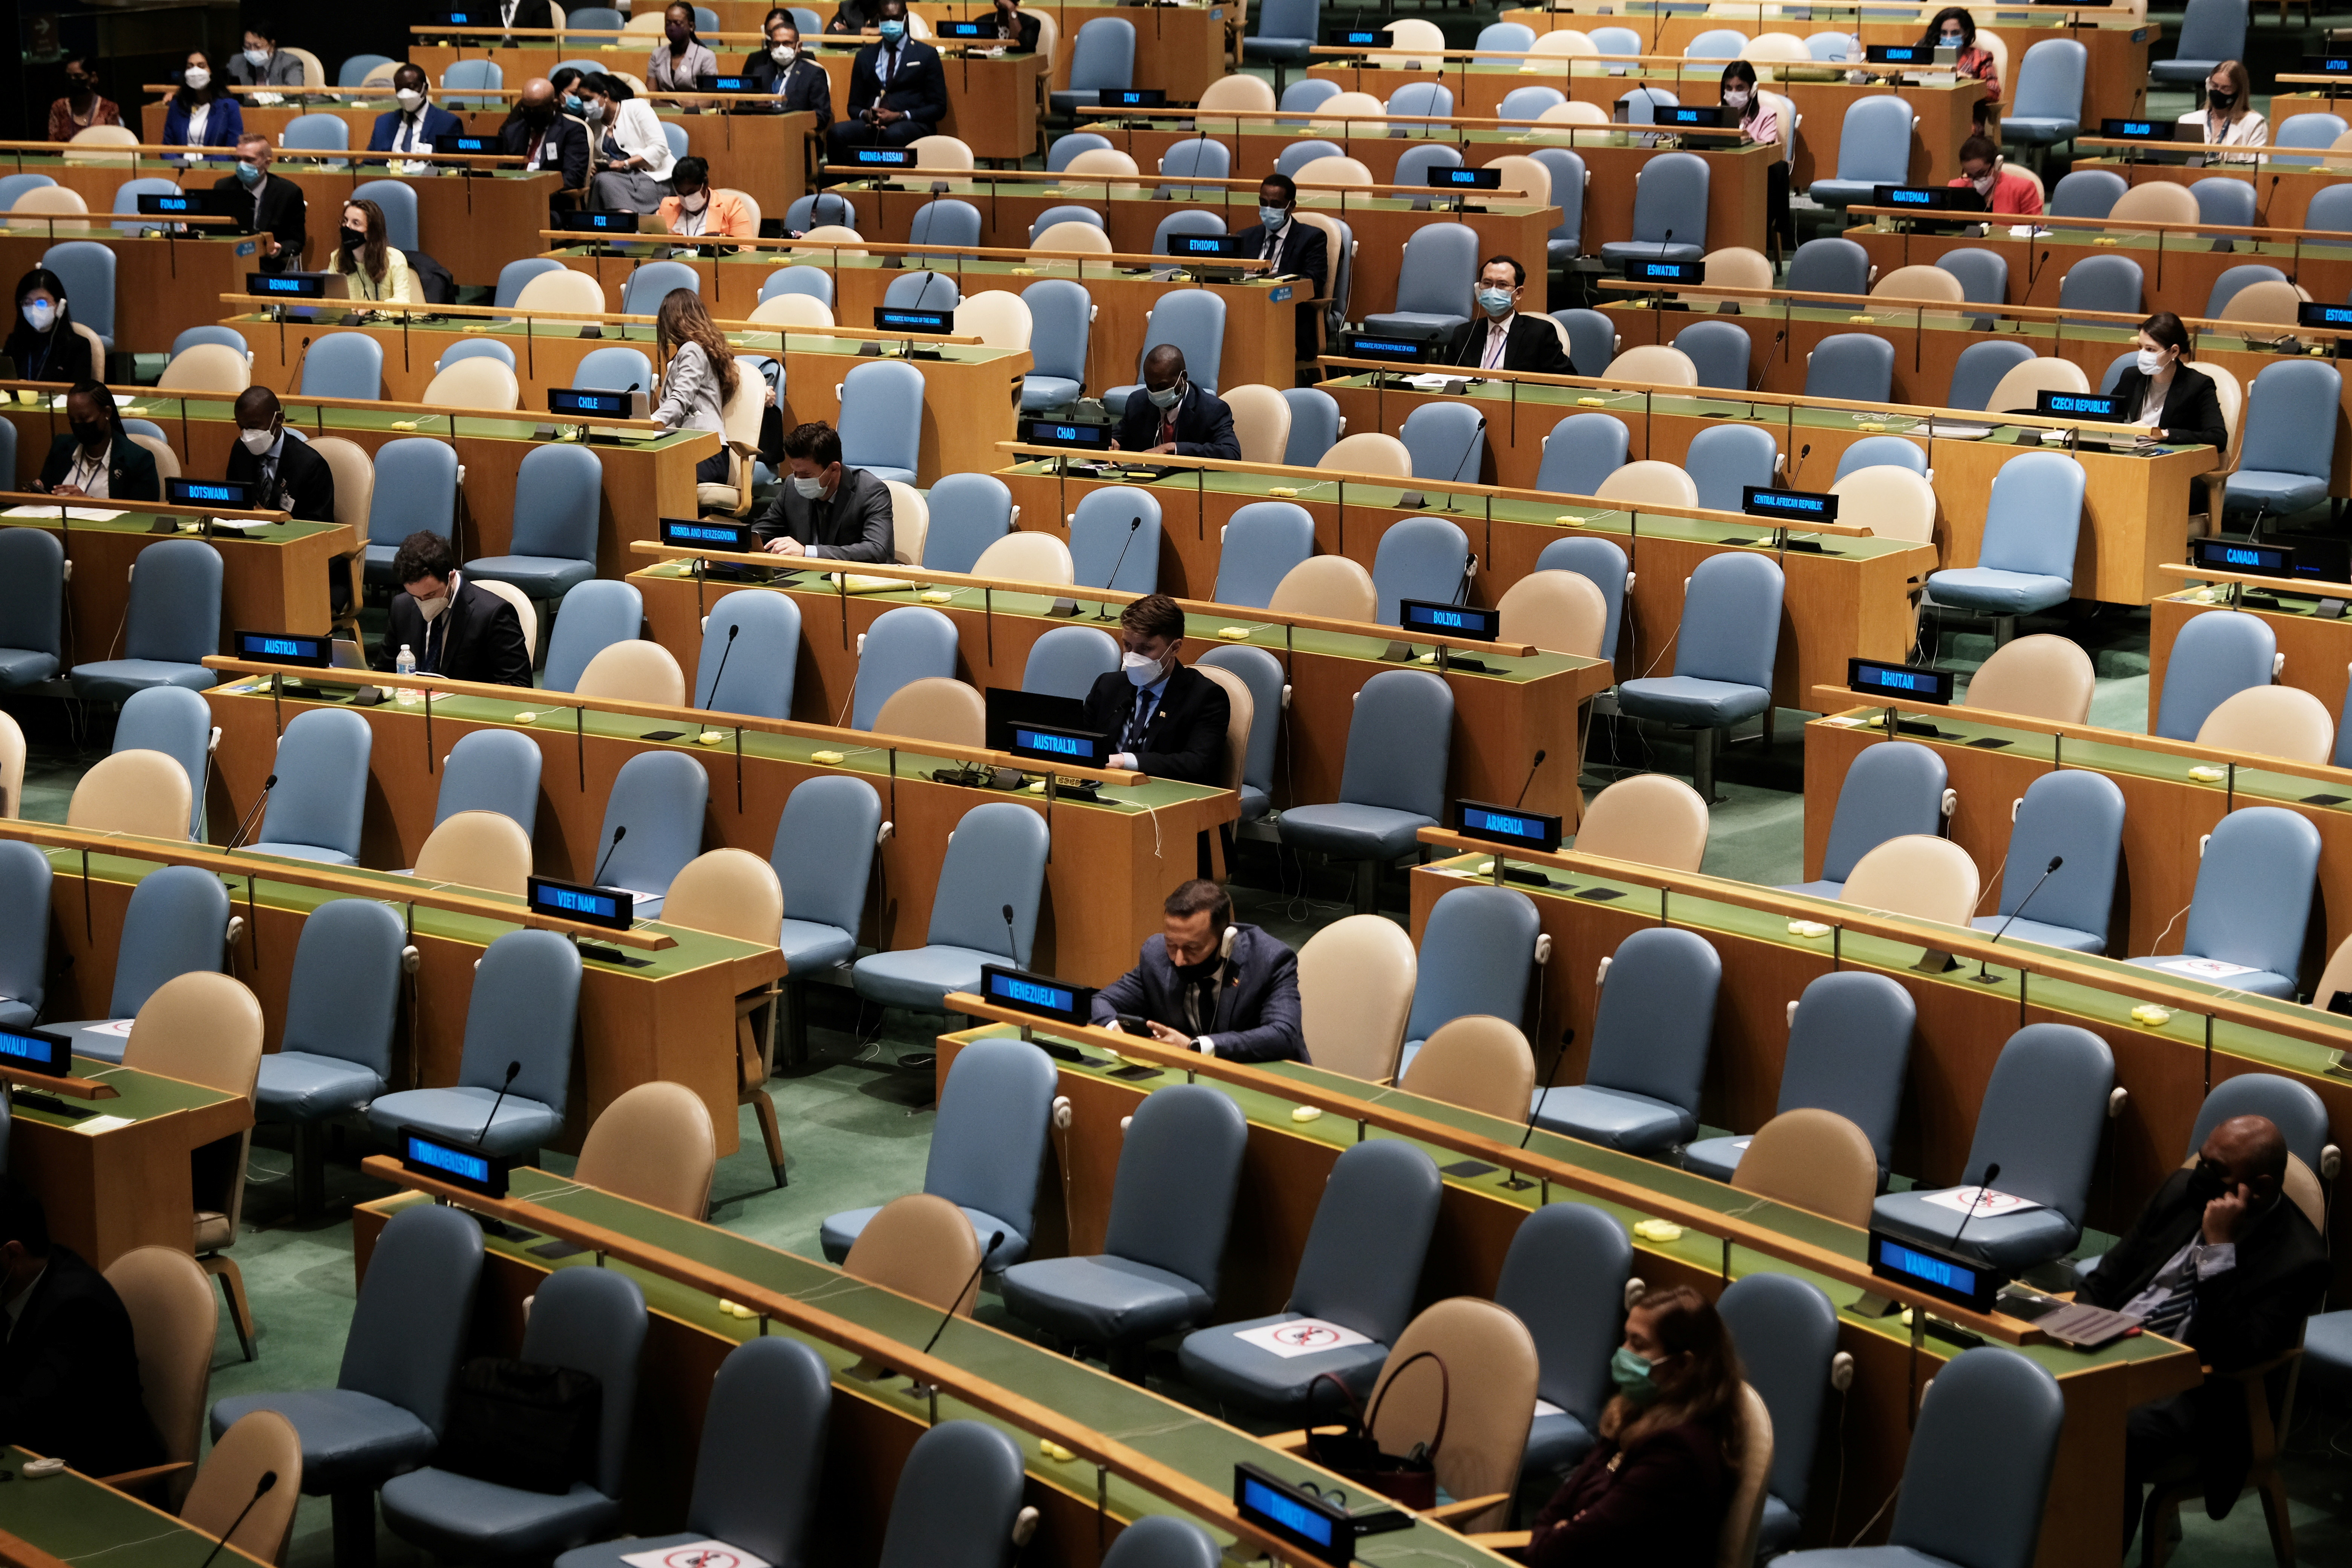 Due to coronavirus disease (COVID-19) restrictions, a smaller number of delegates are attending the 76th session of the United Nations General Assembly at the U.N. headquarters in New York, U.S., September 23, 2021. Spencer Platt/Pool via REUTERS - RC2LVP9MO681